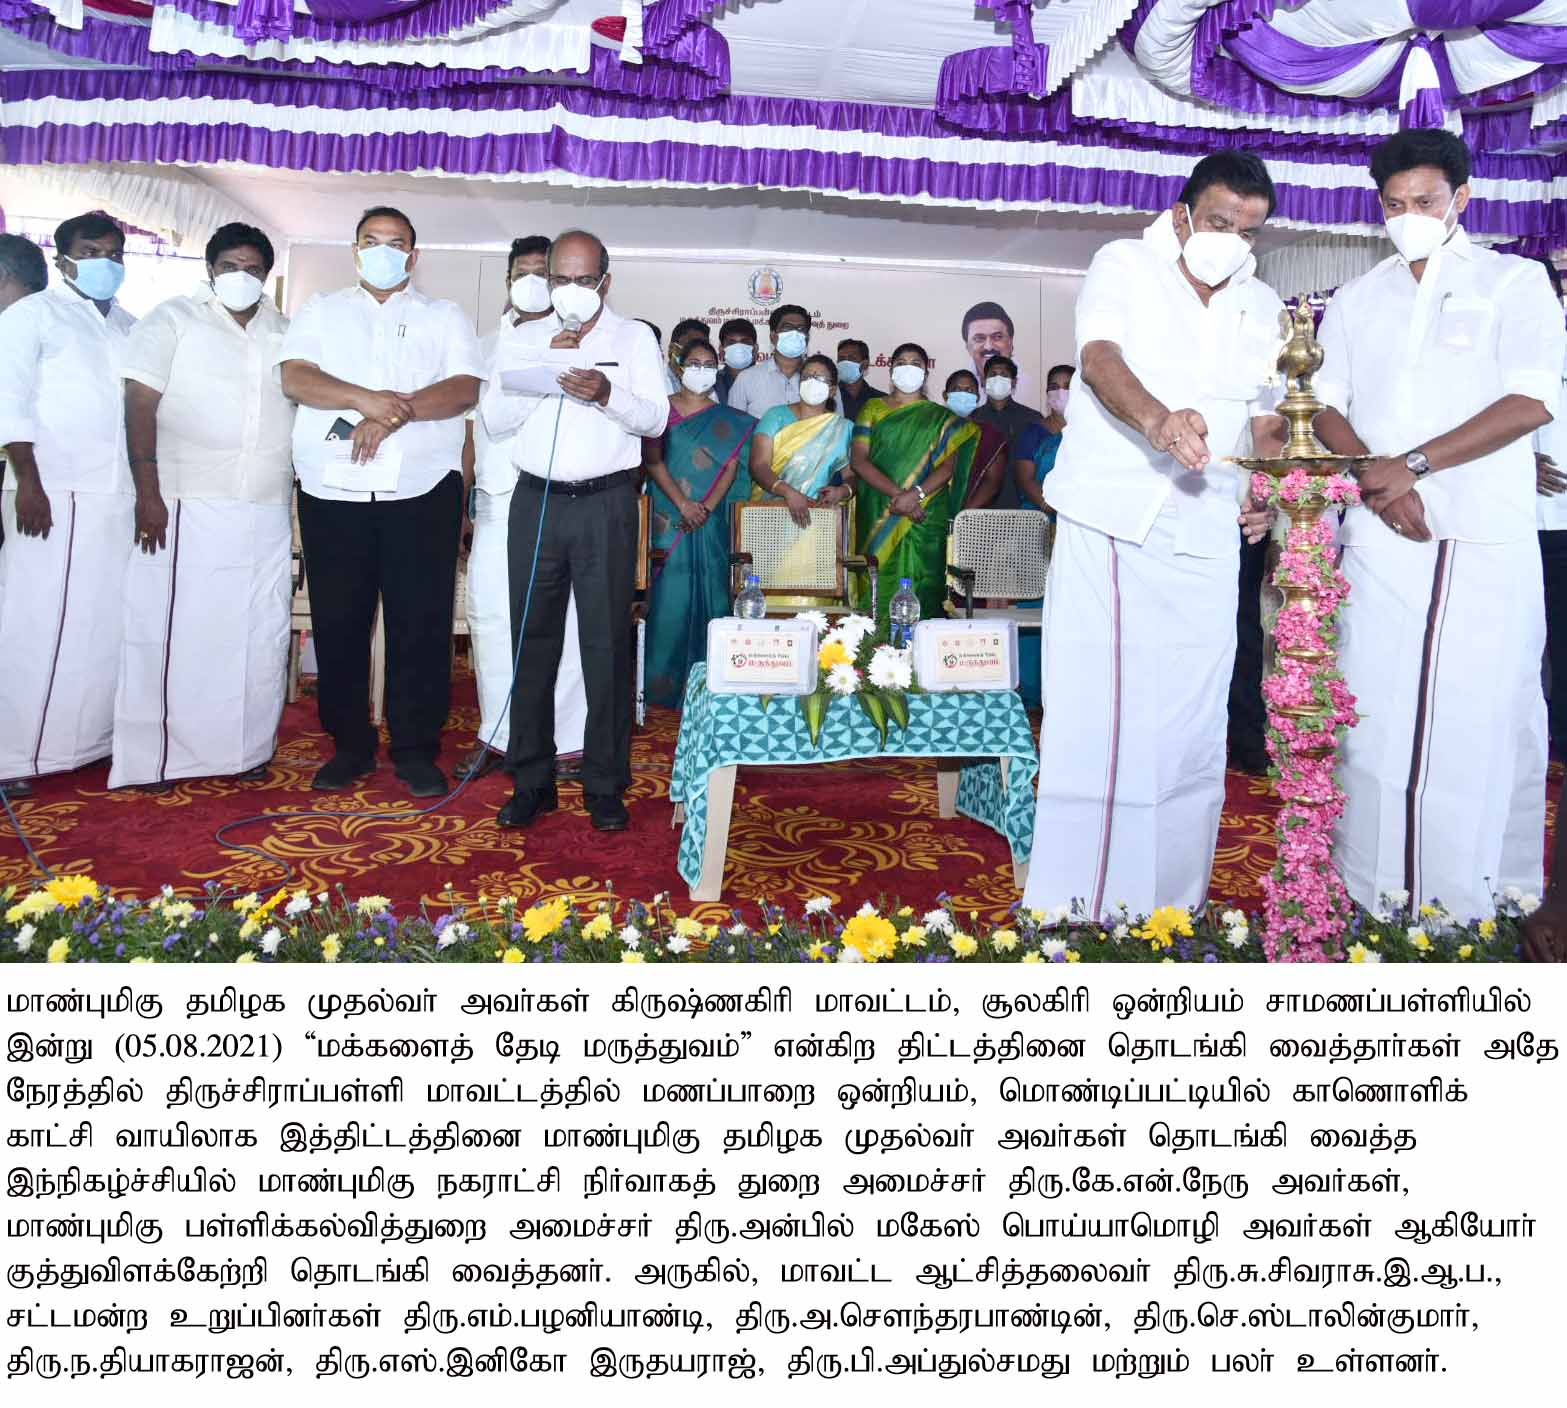 Hon'ble Municipal Administration Minister and Hon'ble School Educational Minister Launched Makkalai Thaedi MaruthJHuvam Project on 05-08-2021